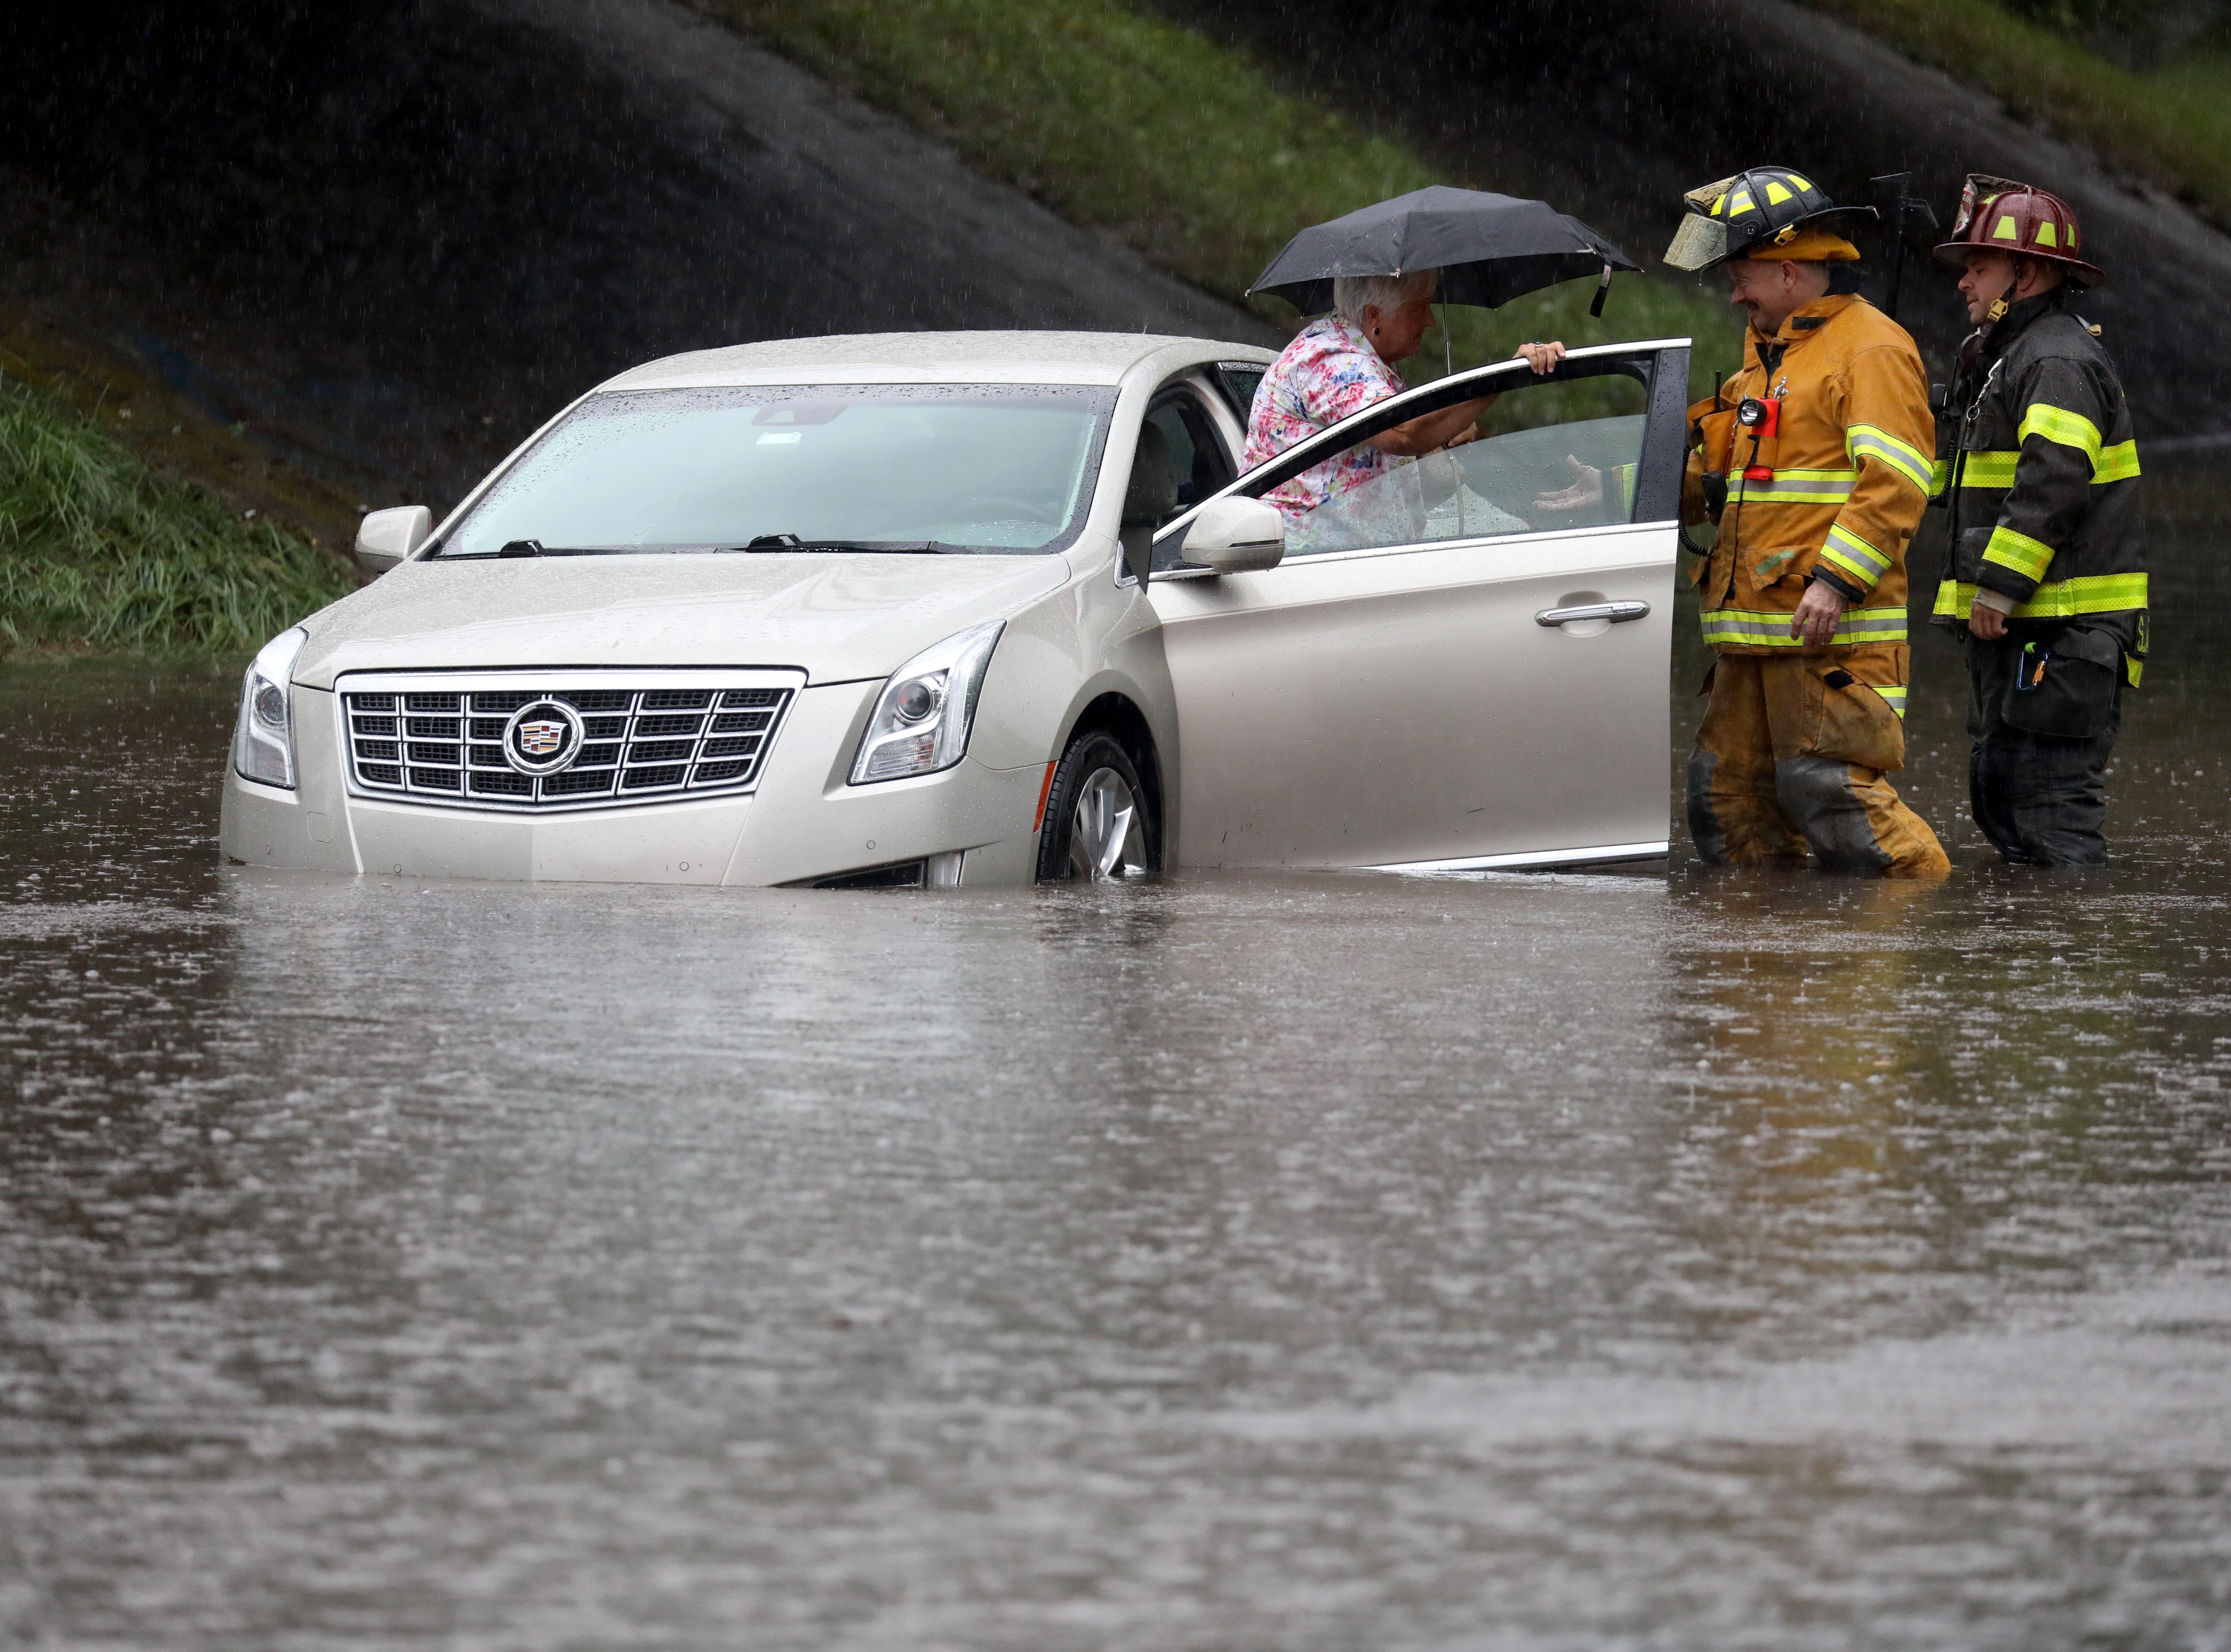 Tim Young and Sal Tantlo with Bushnell's Basin Fire Department, help a woman from her car after it became trapped in flooding on Garnsey Rd.